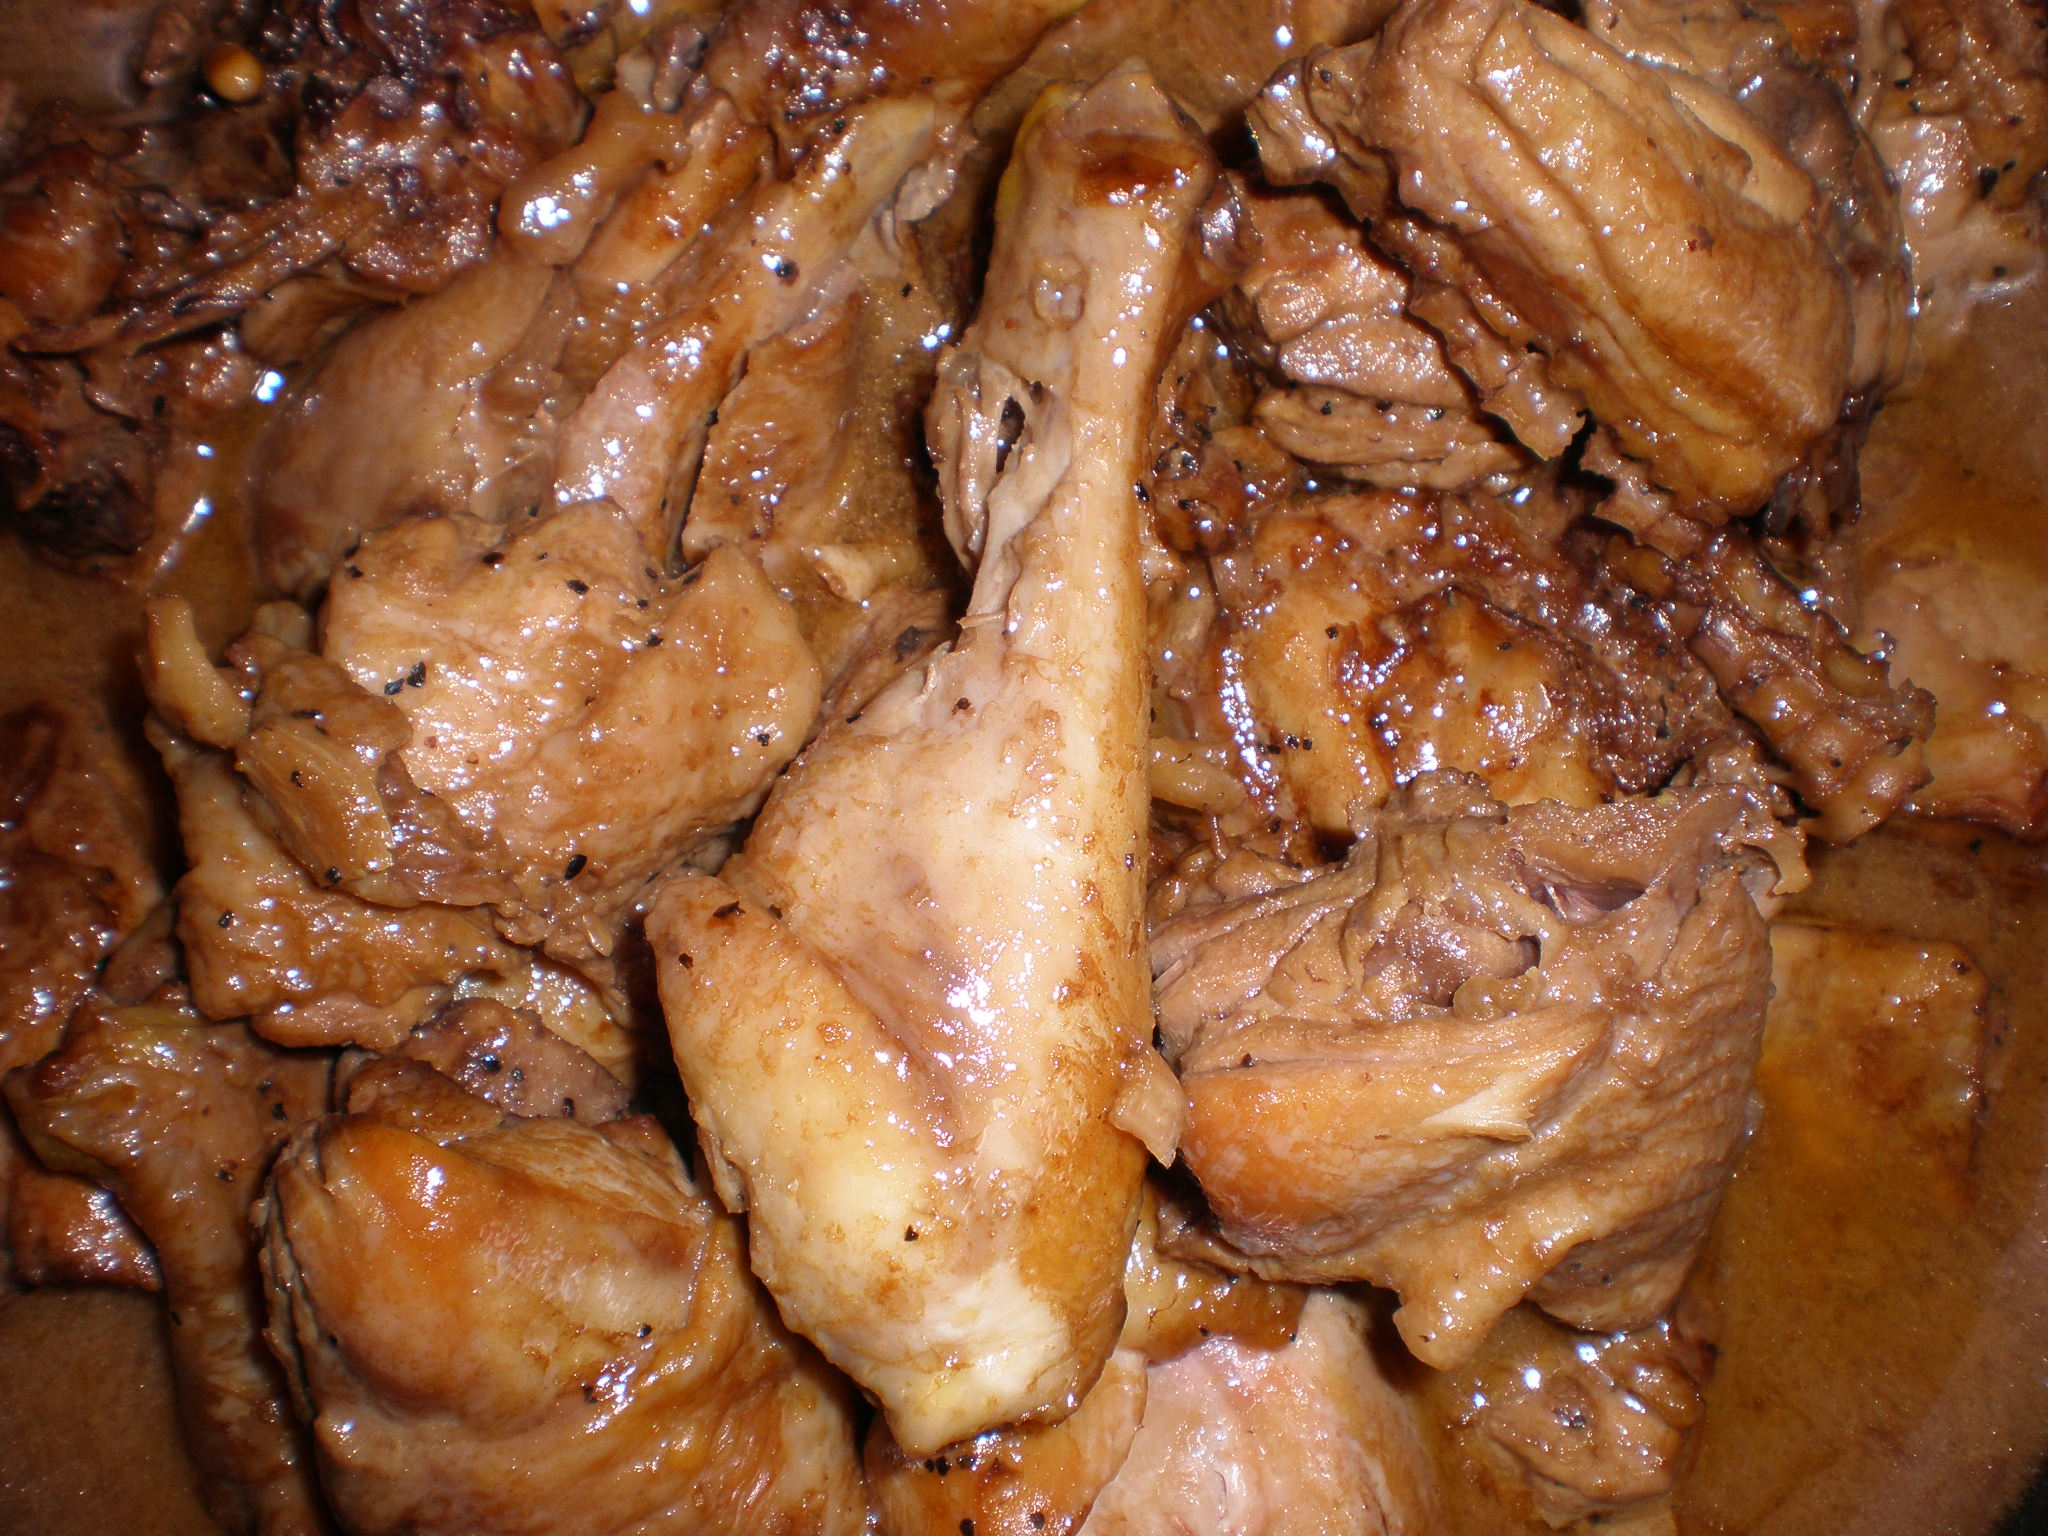 File:Homemade chicken adobo 1.JPG - Wikimedia Commons